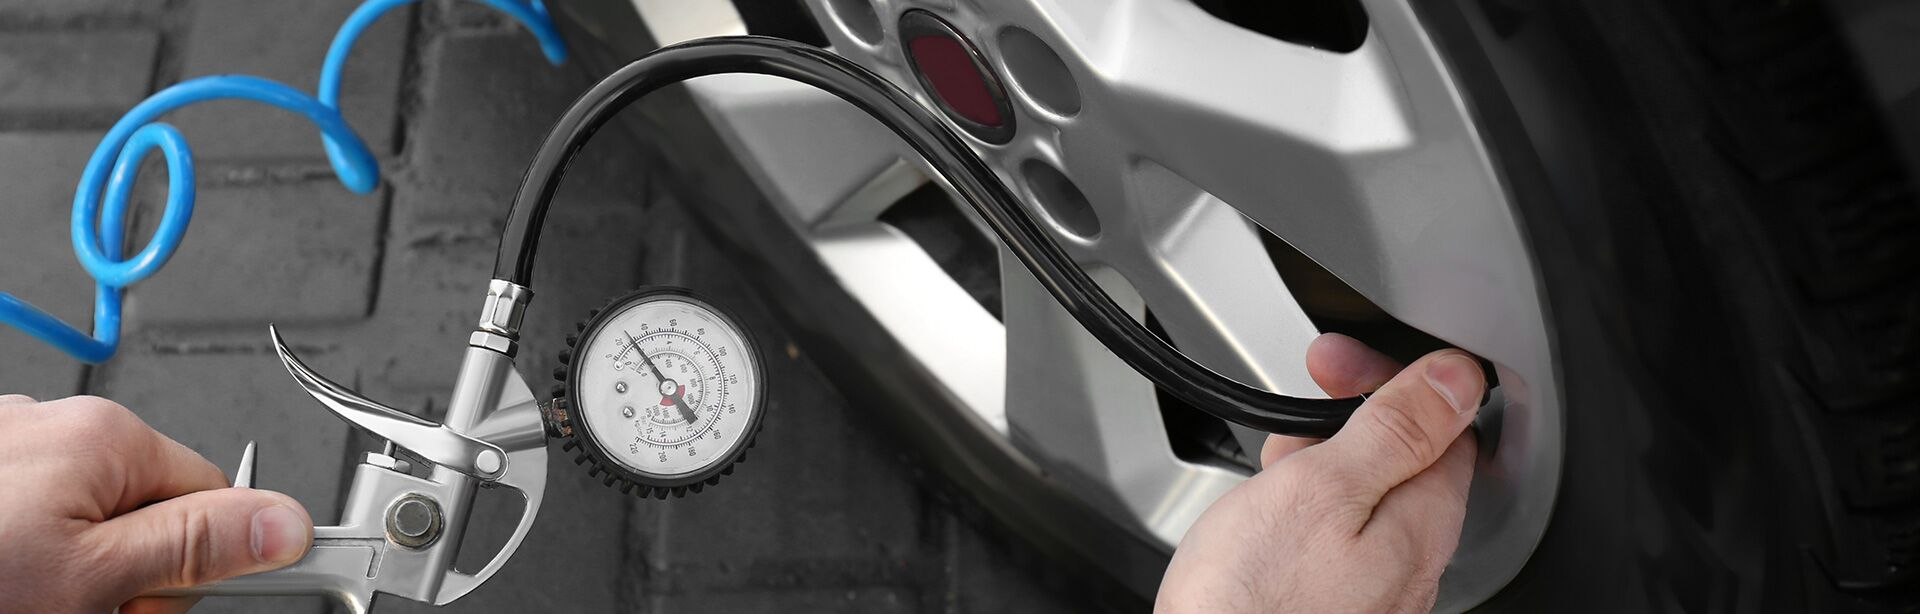 How to Reset Your Honda's TPMS